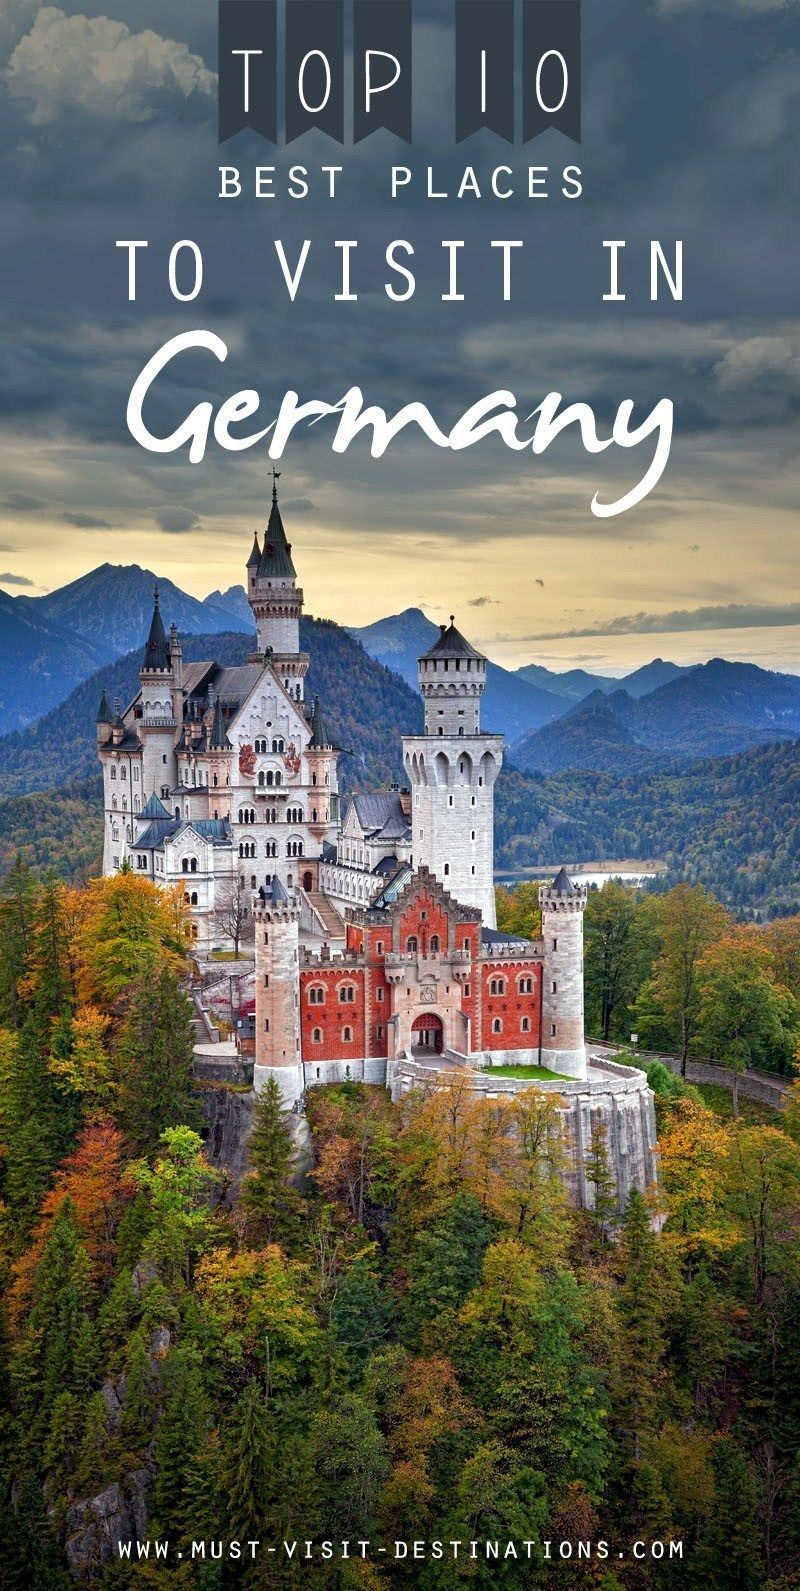 Top 10 Best Places To Visit In Germany Culture Travel Buy Air